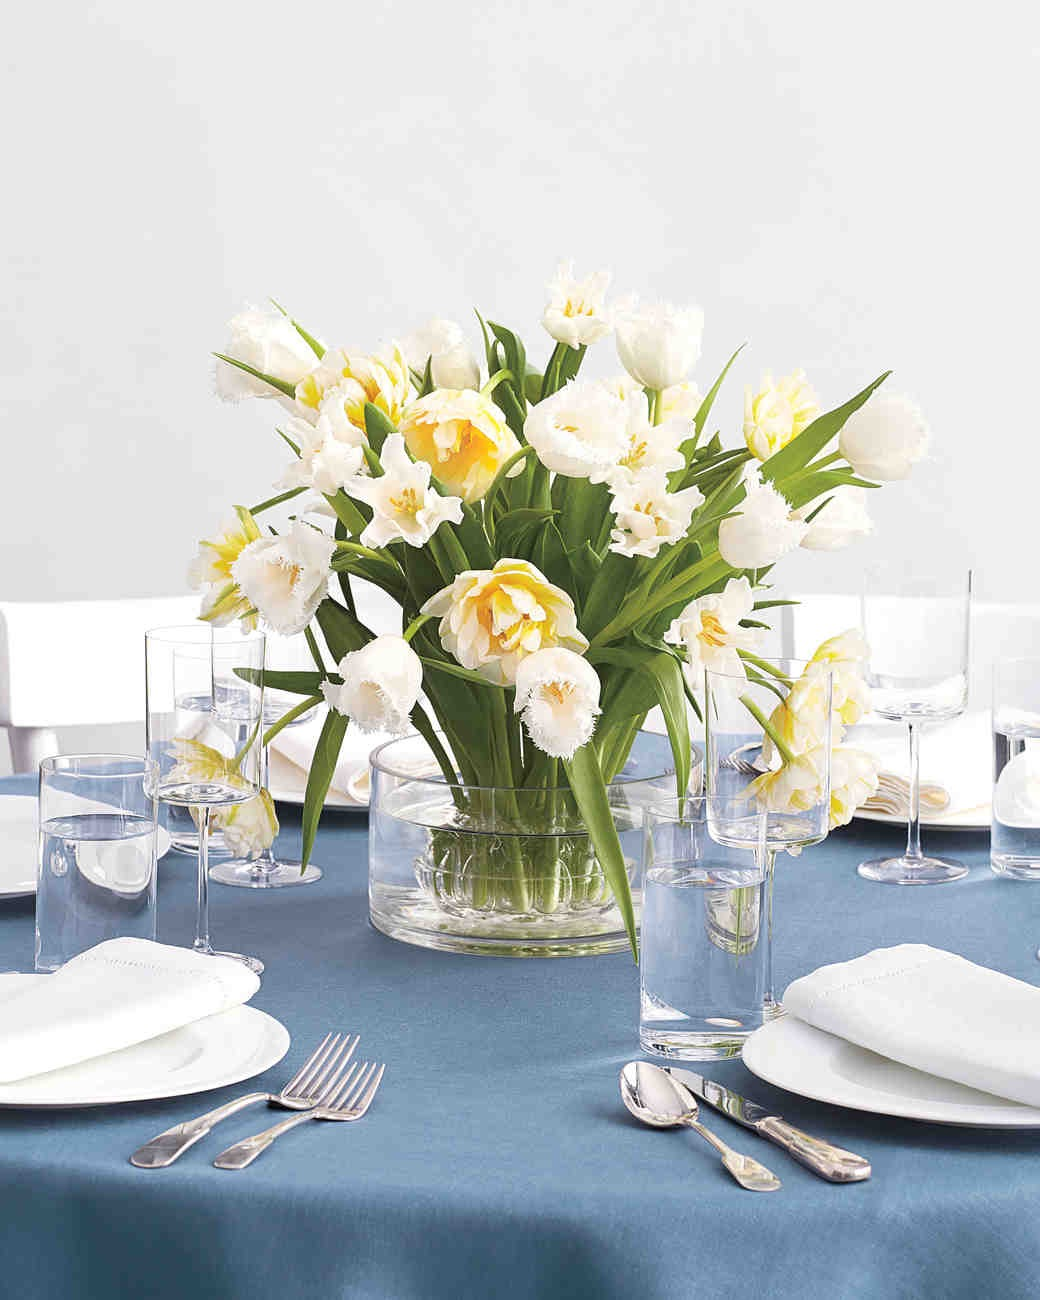 Summer Wedding Centerpiece Ideas: 20 Pretty Summer Wedding Centerpiece Ideas #19316